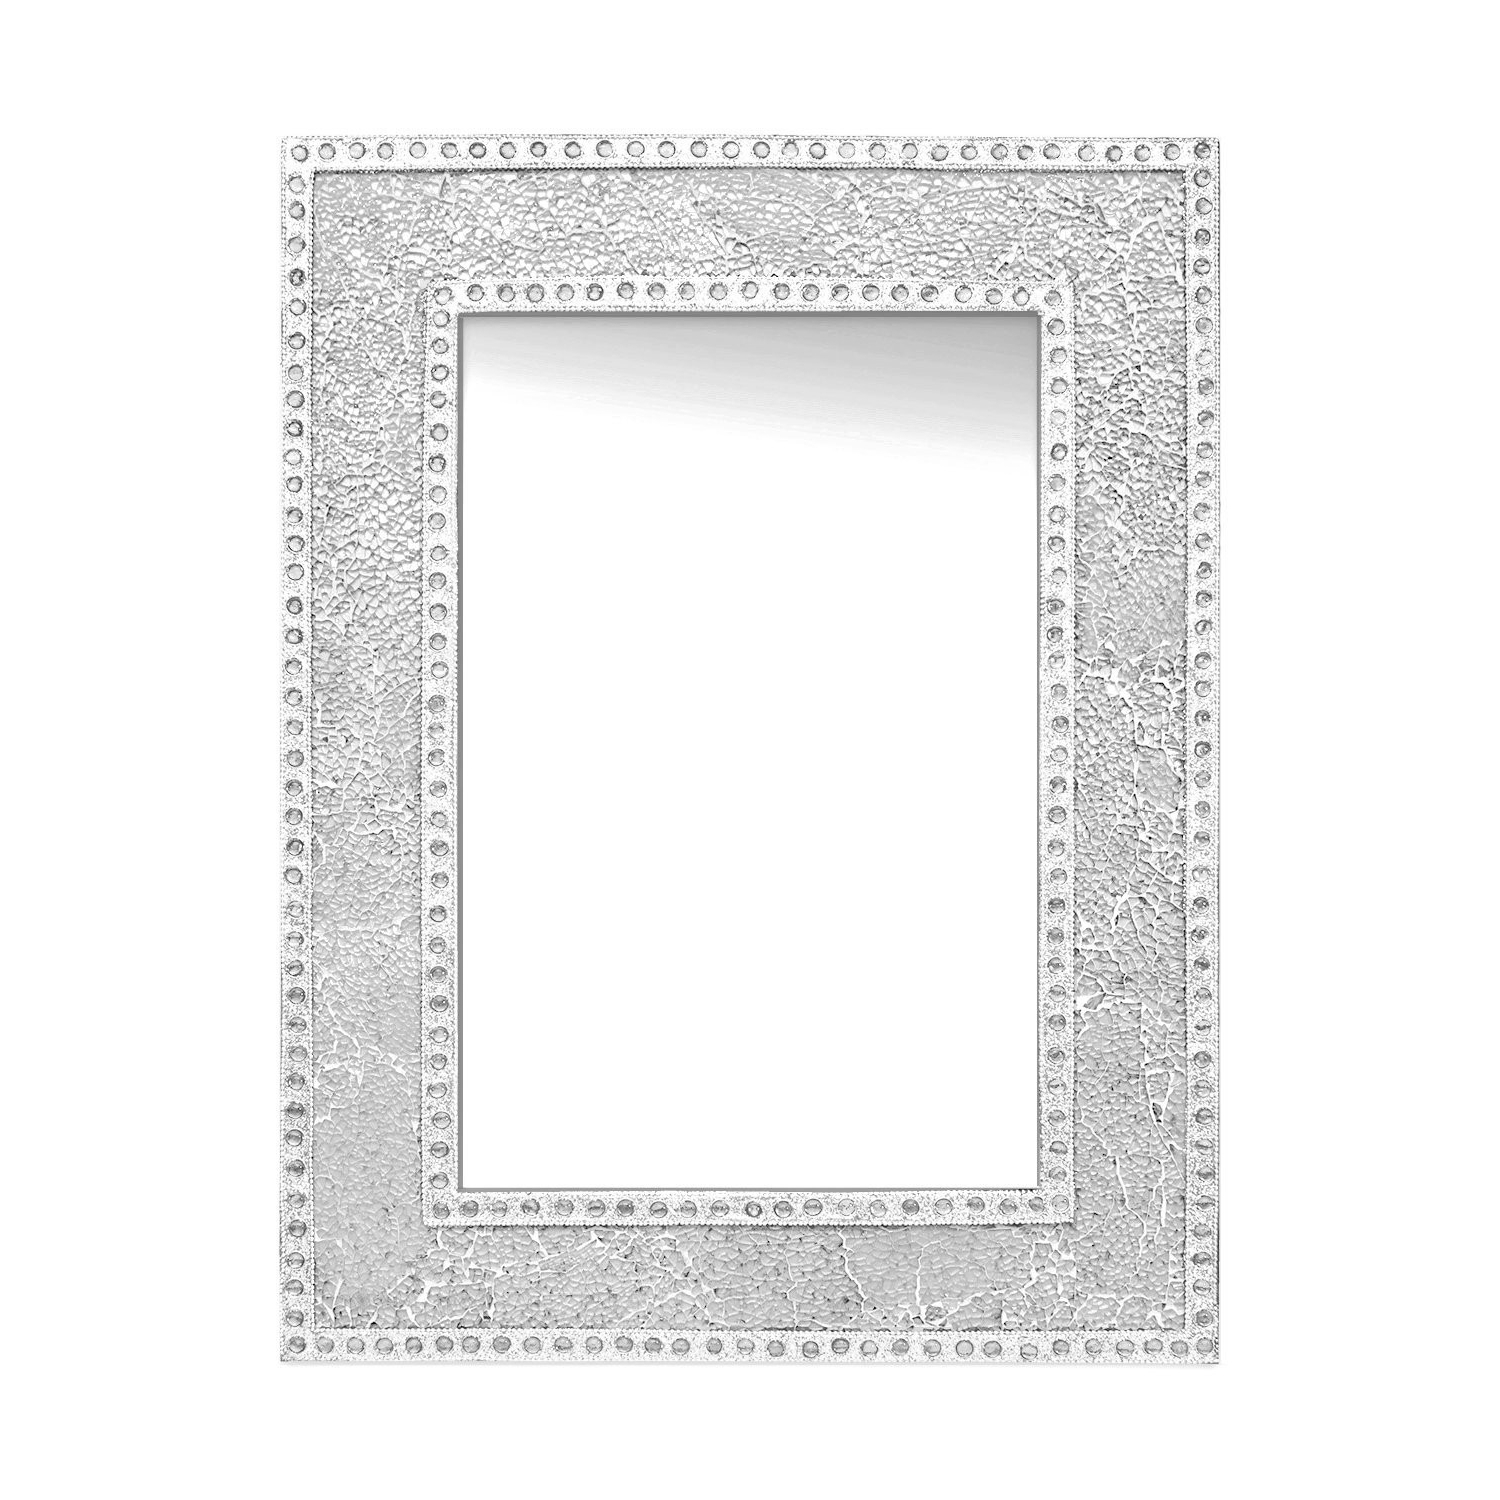 """Favorite Glass Mosaic Wall Mirrors Inside Decorshore 24""""x18"""" Crackled Glass Framed Rectangular Decorative Mosaic Wall Mirror, Accent Mirror Silver (View 6 of 20)"""